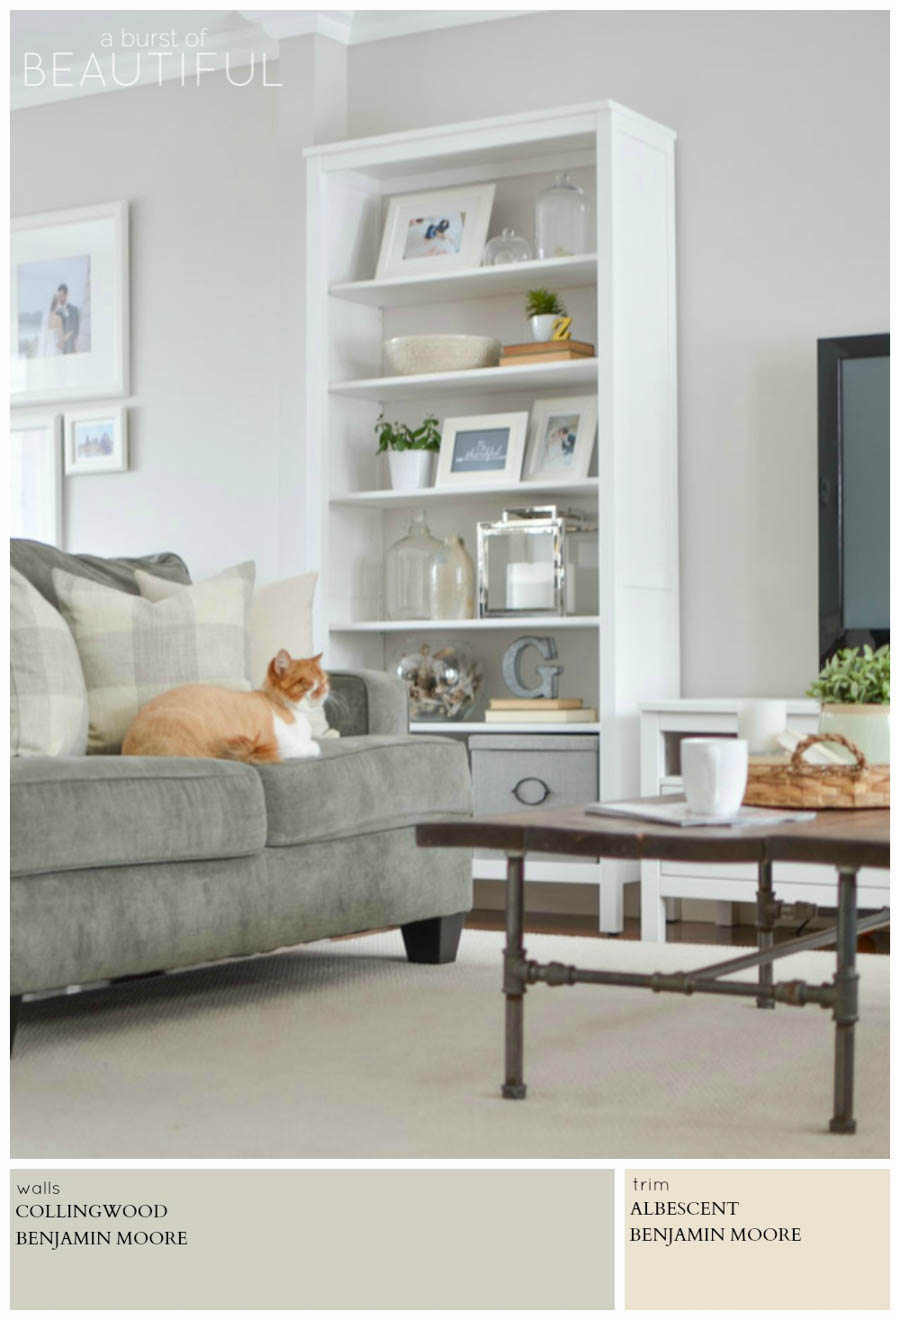 collingwood by benjamin moore is a classic and versatile color for any space a burst - Benjamin Moore Room Color Ideas